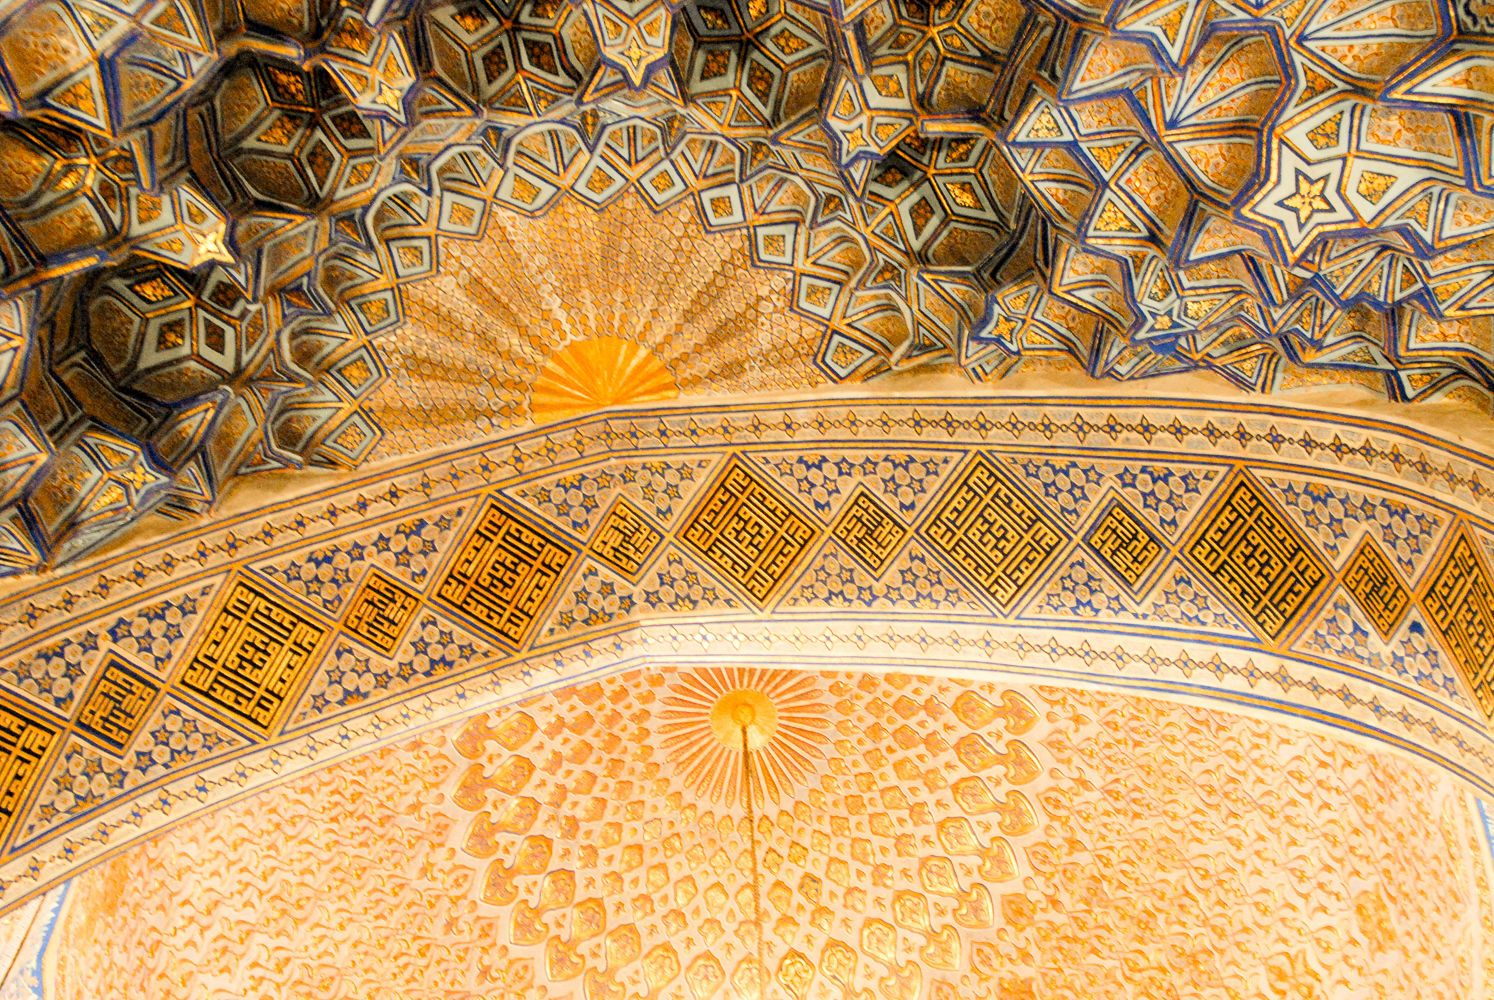 golden interior decoration of Samarkand, Uzbekistan